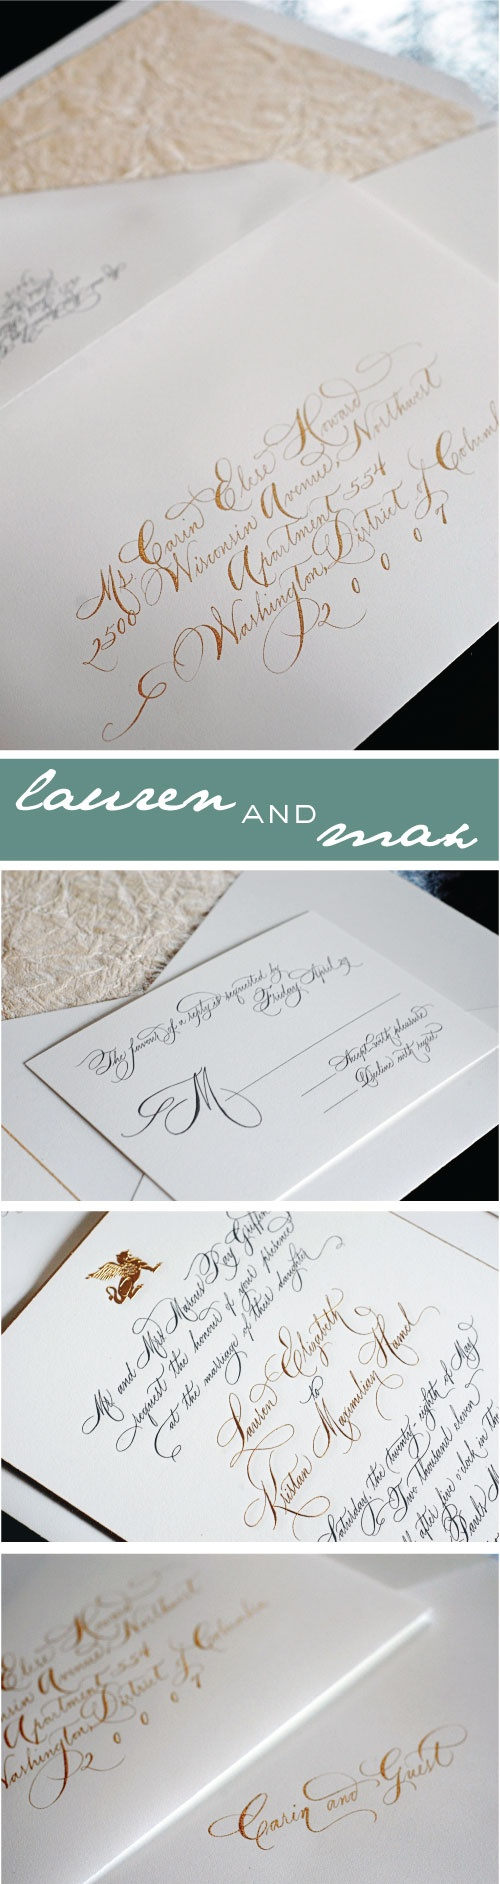 sample wedding invitation letter for uk visa%0A Haute Papier    Real Weddings    InvitesWedding InvitationsMasquerade Wedding